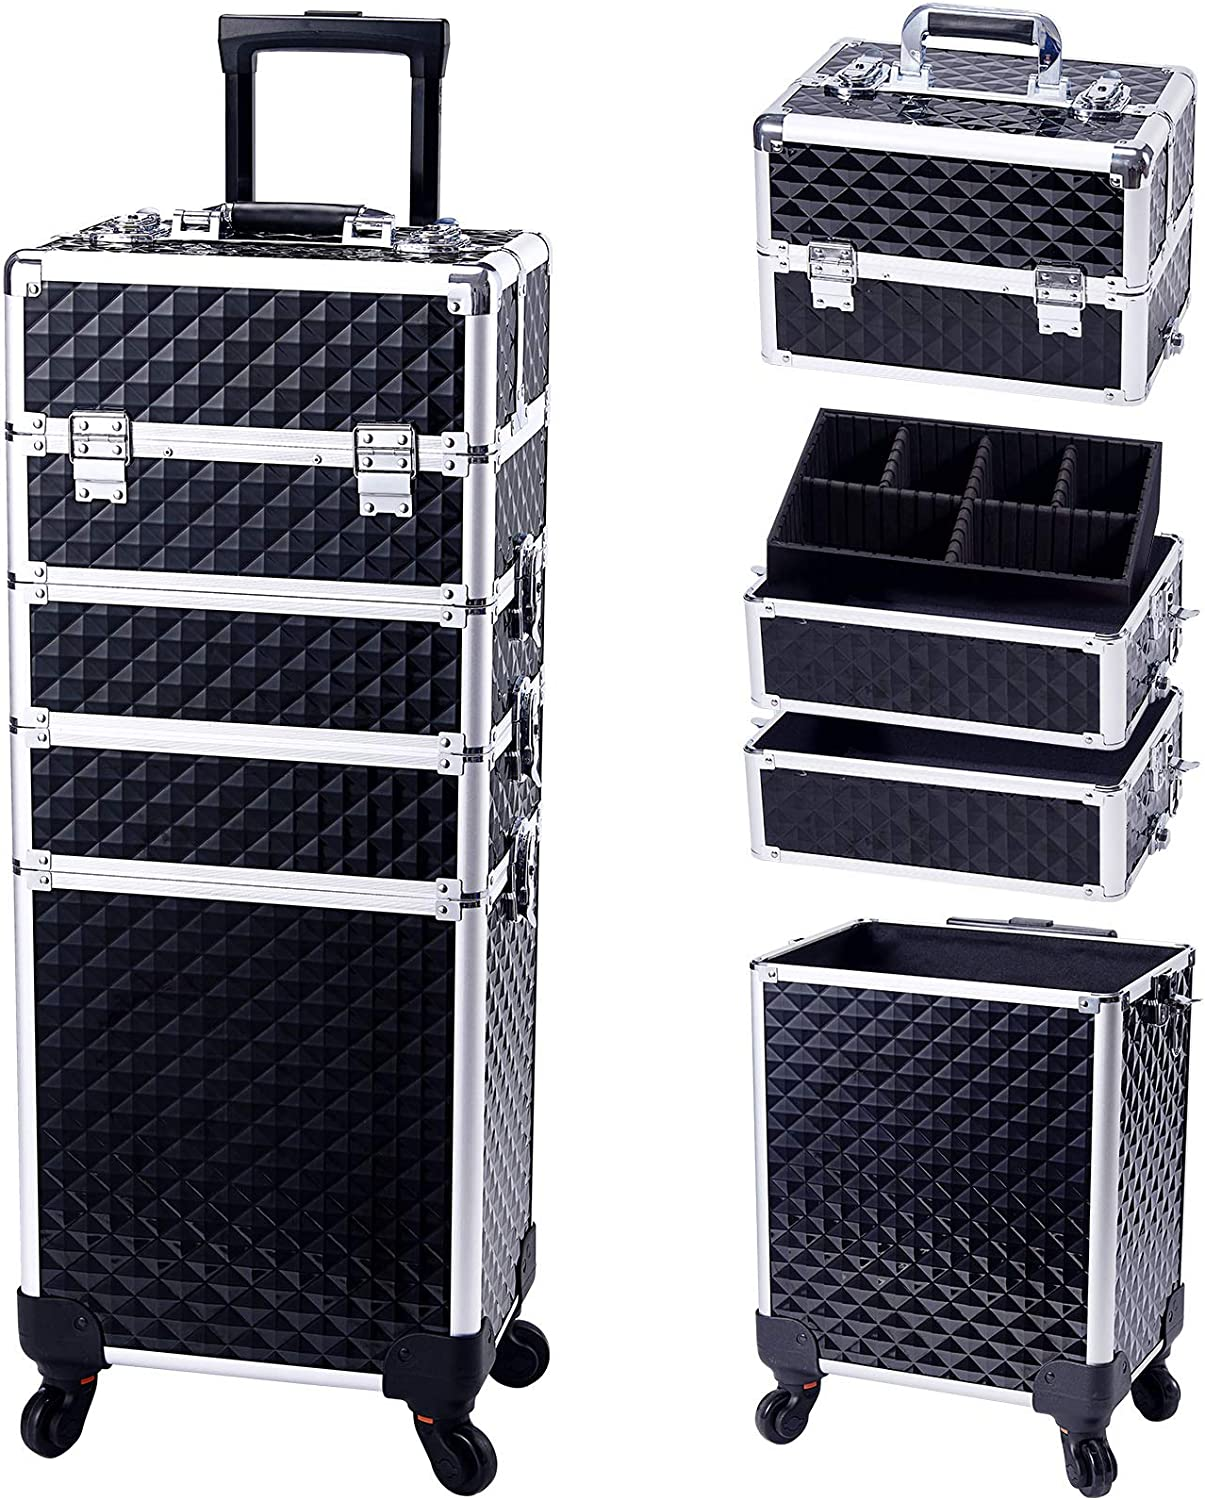 Stagiant Rolling Makeup Train Case online shopping Cosmetic Storage Free shipping anywhere in the nation Large Trolle